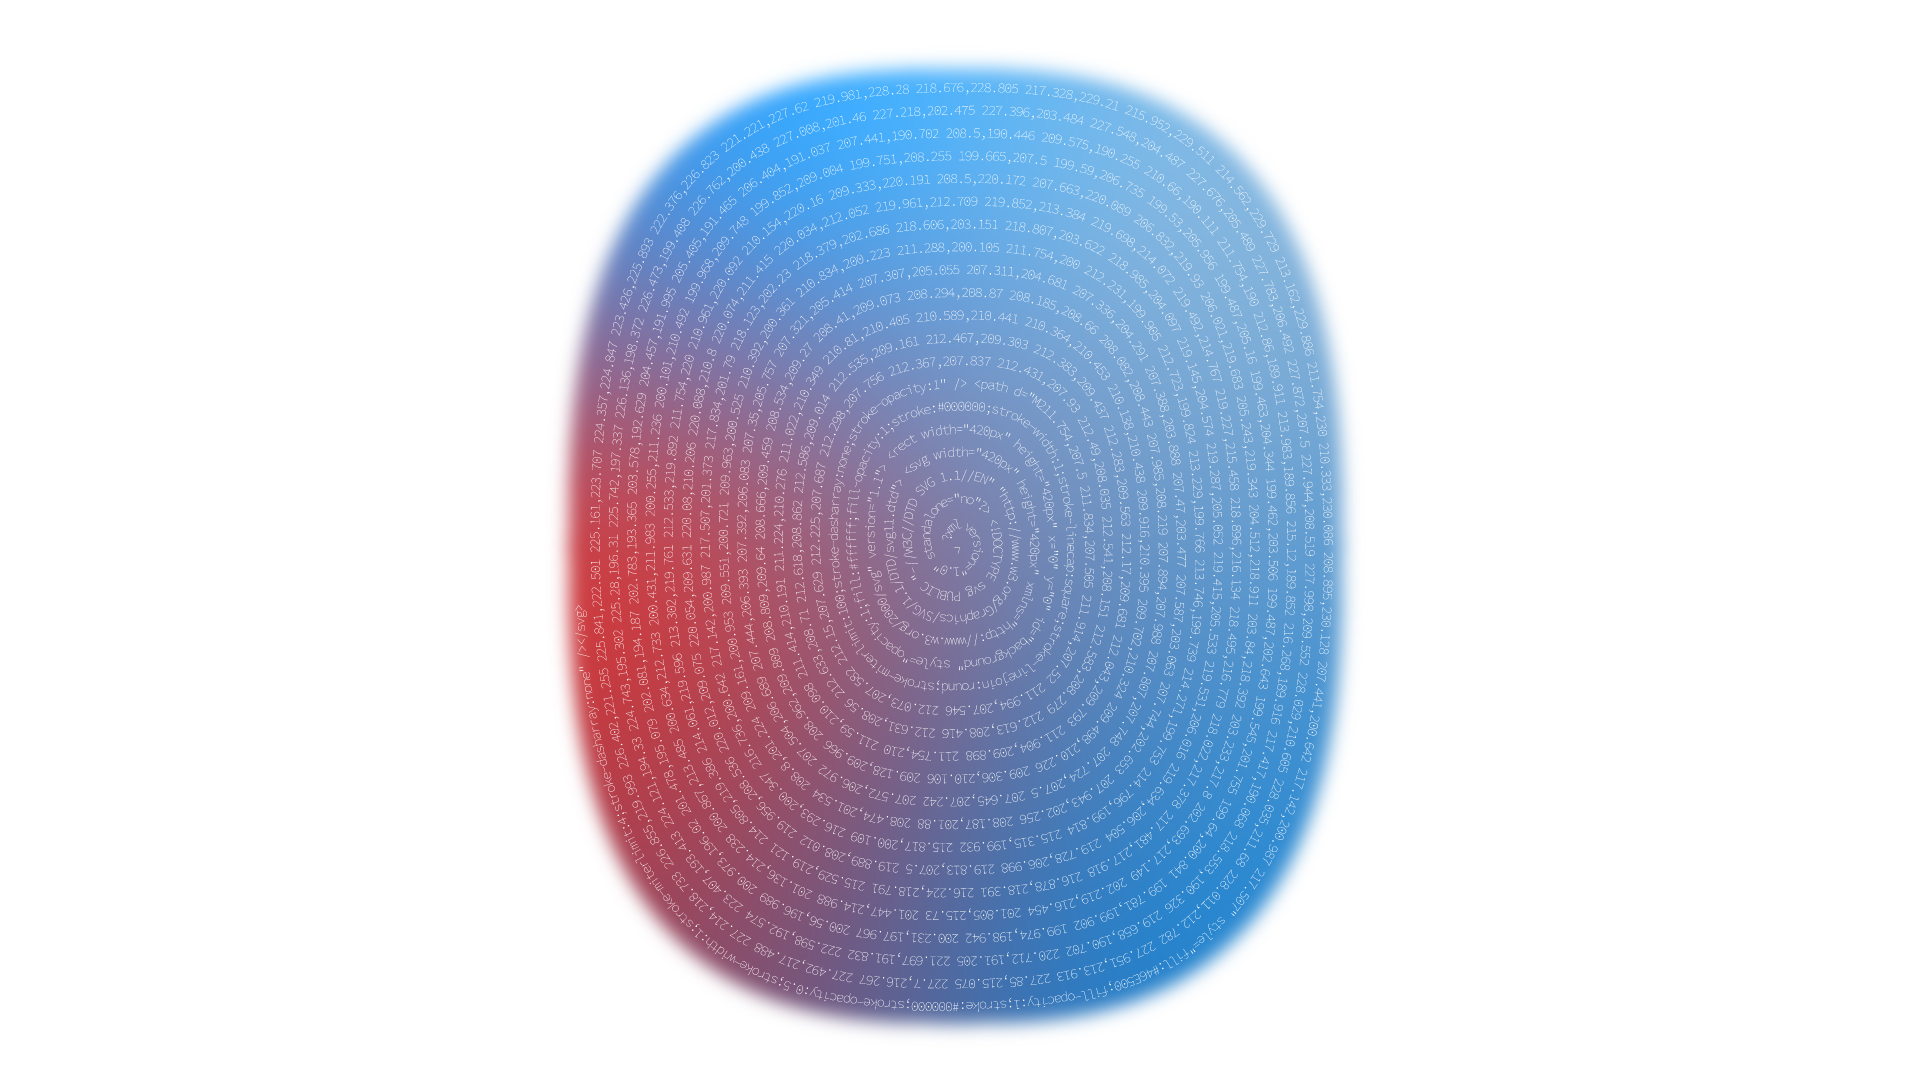 Blue and red ellipse